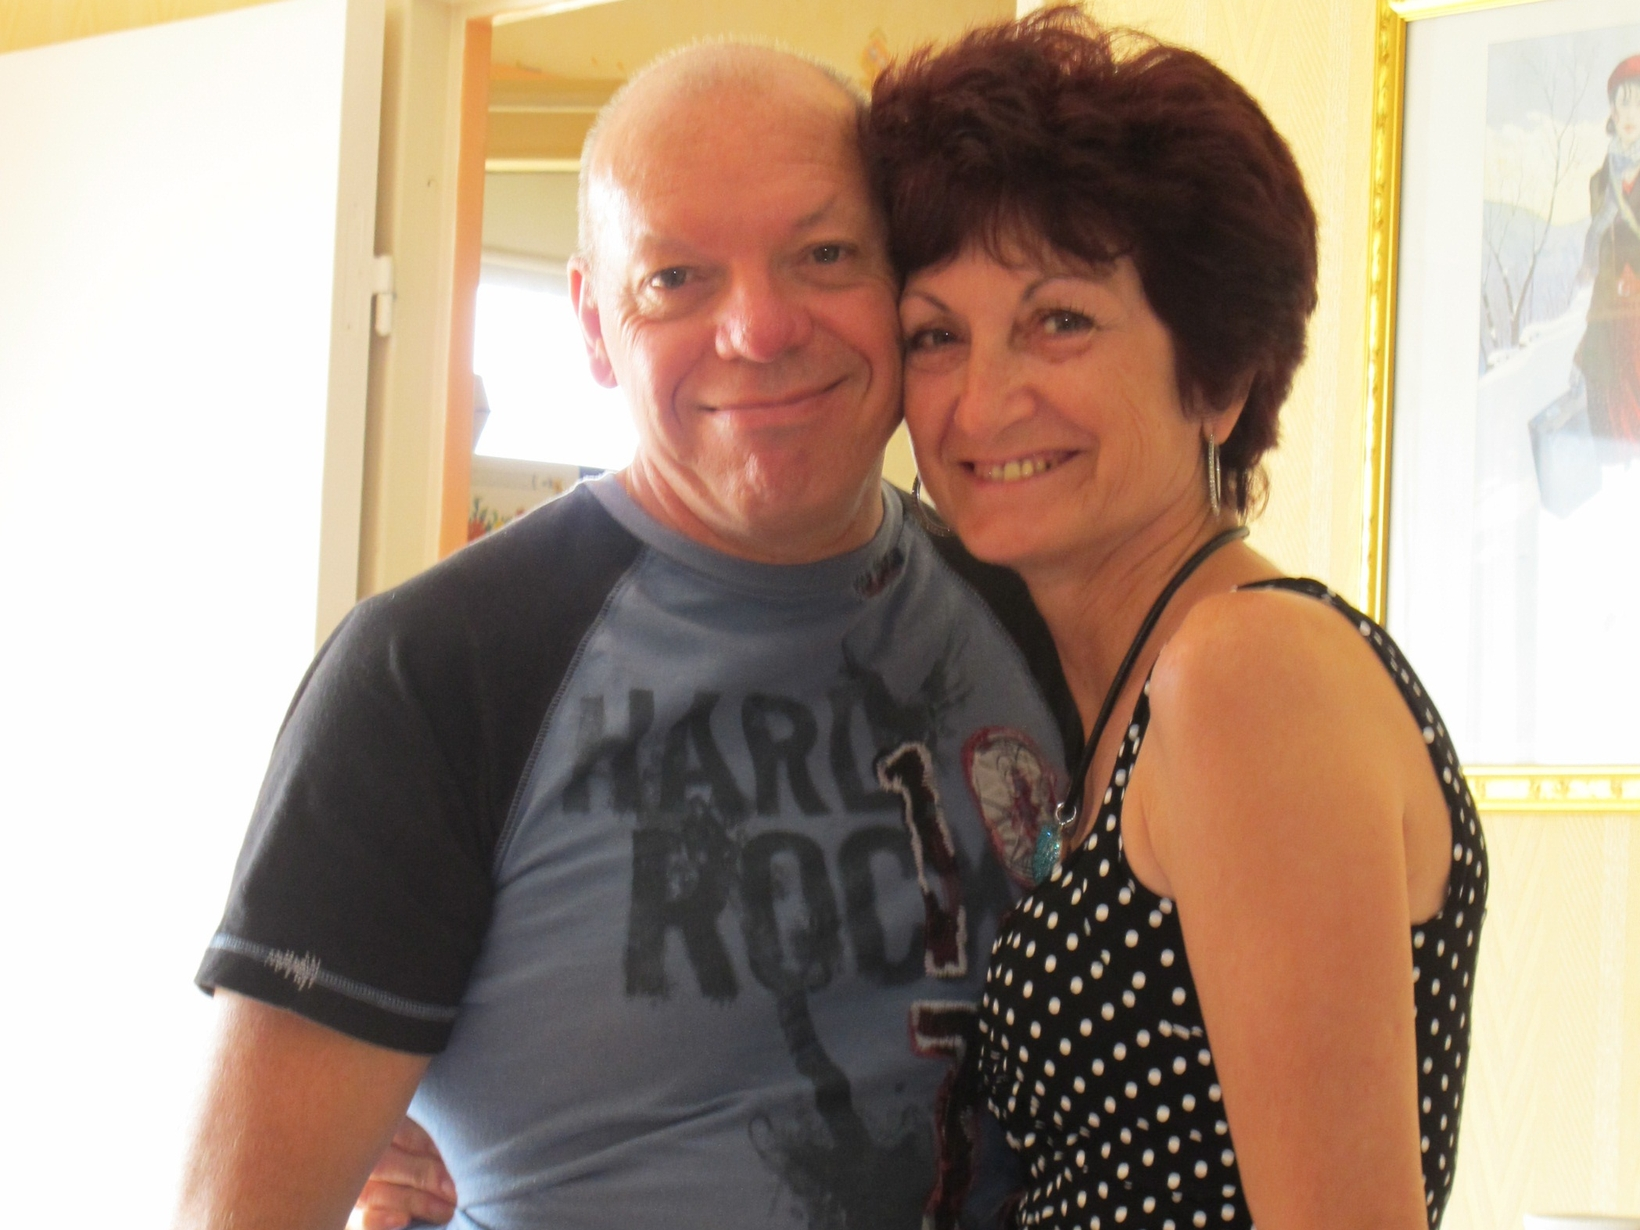 Joelle & Claude from Le Grand-Quevilly, France